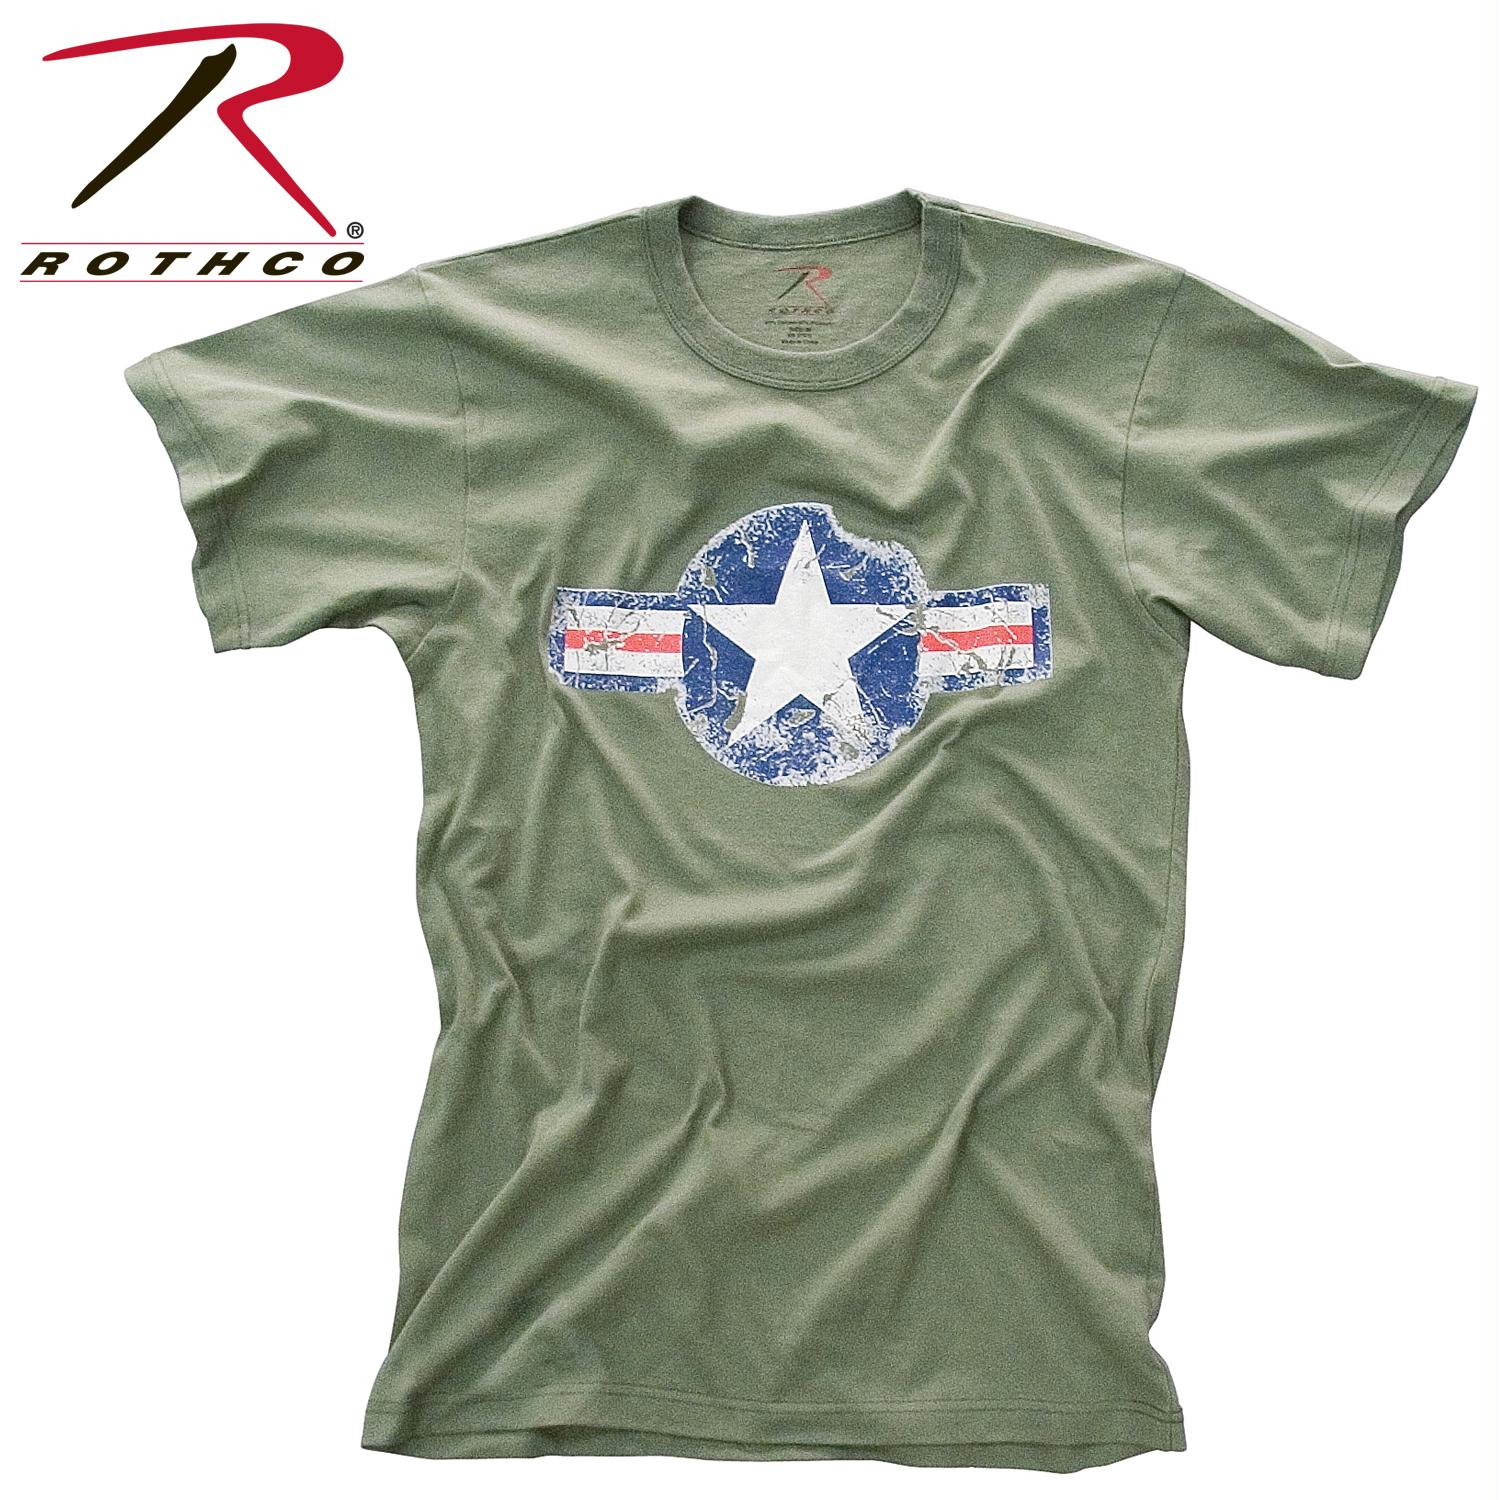 Rothco Vintage Army Air Corps T-Shirt - Olive Drab / XL